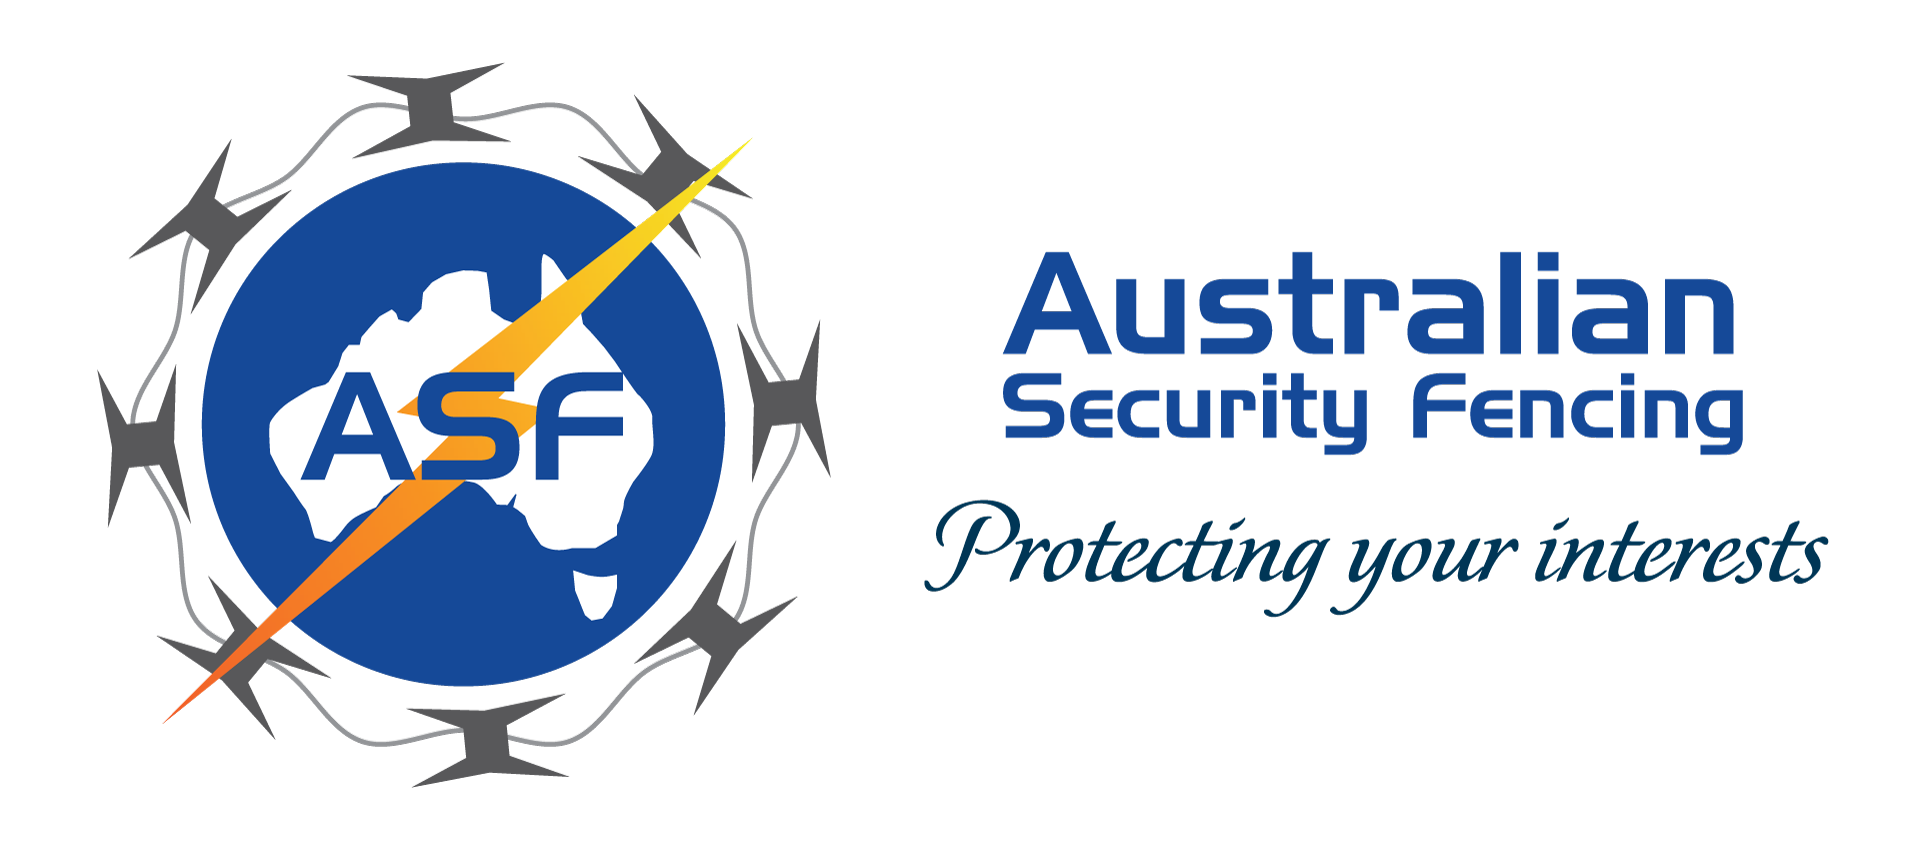 Australian Security Fencing